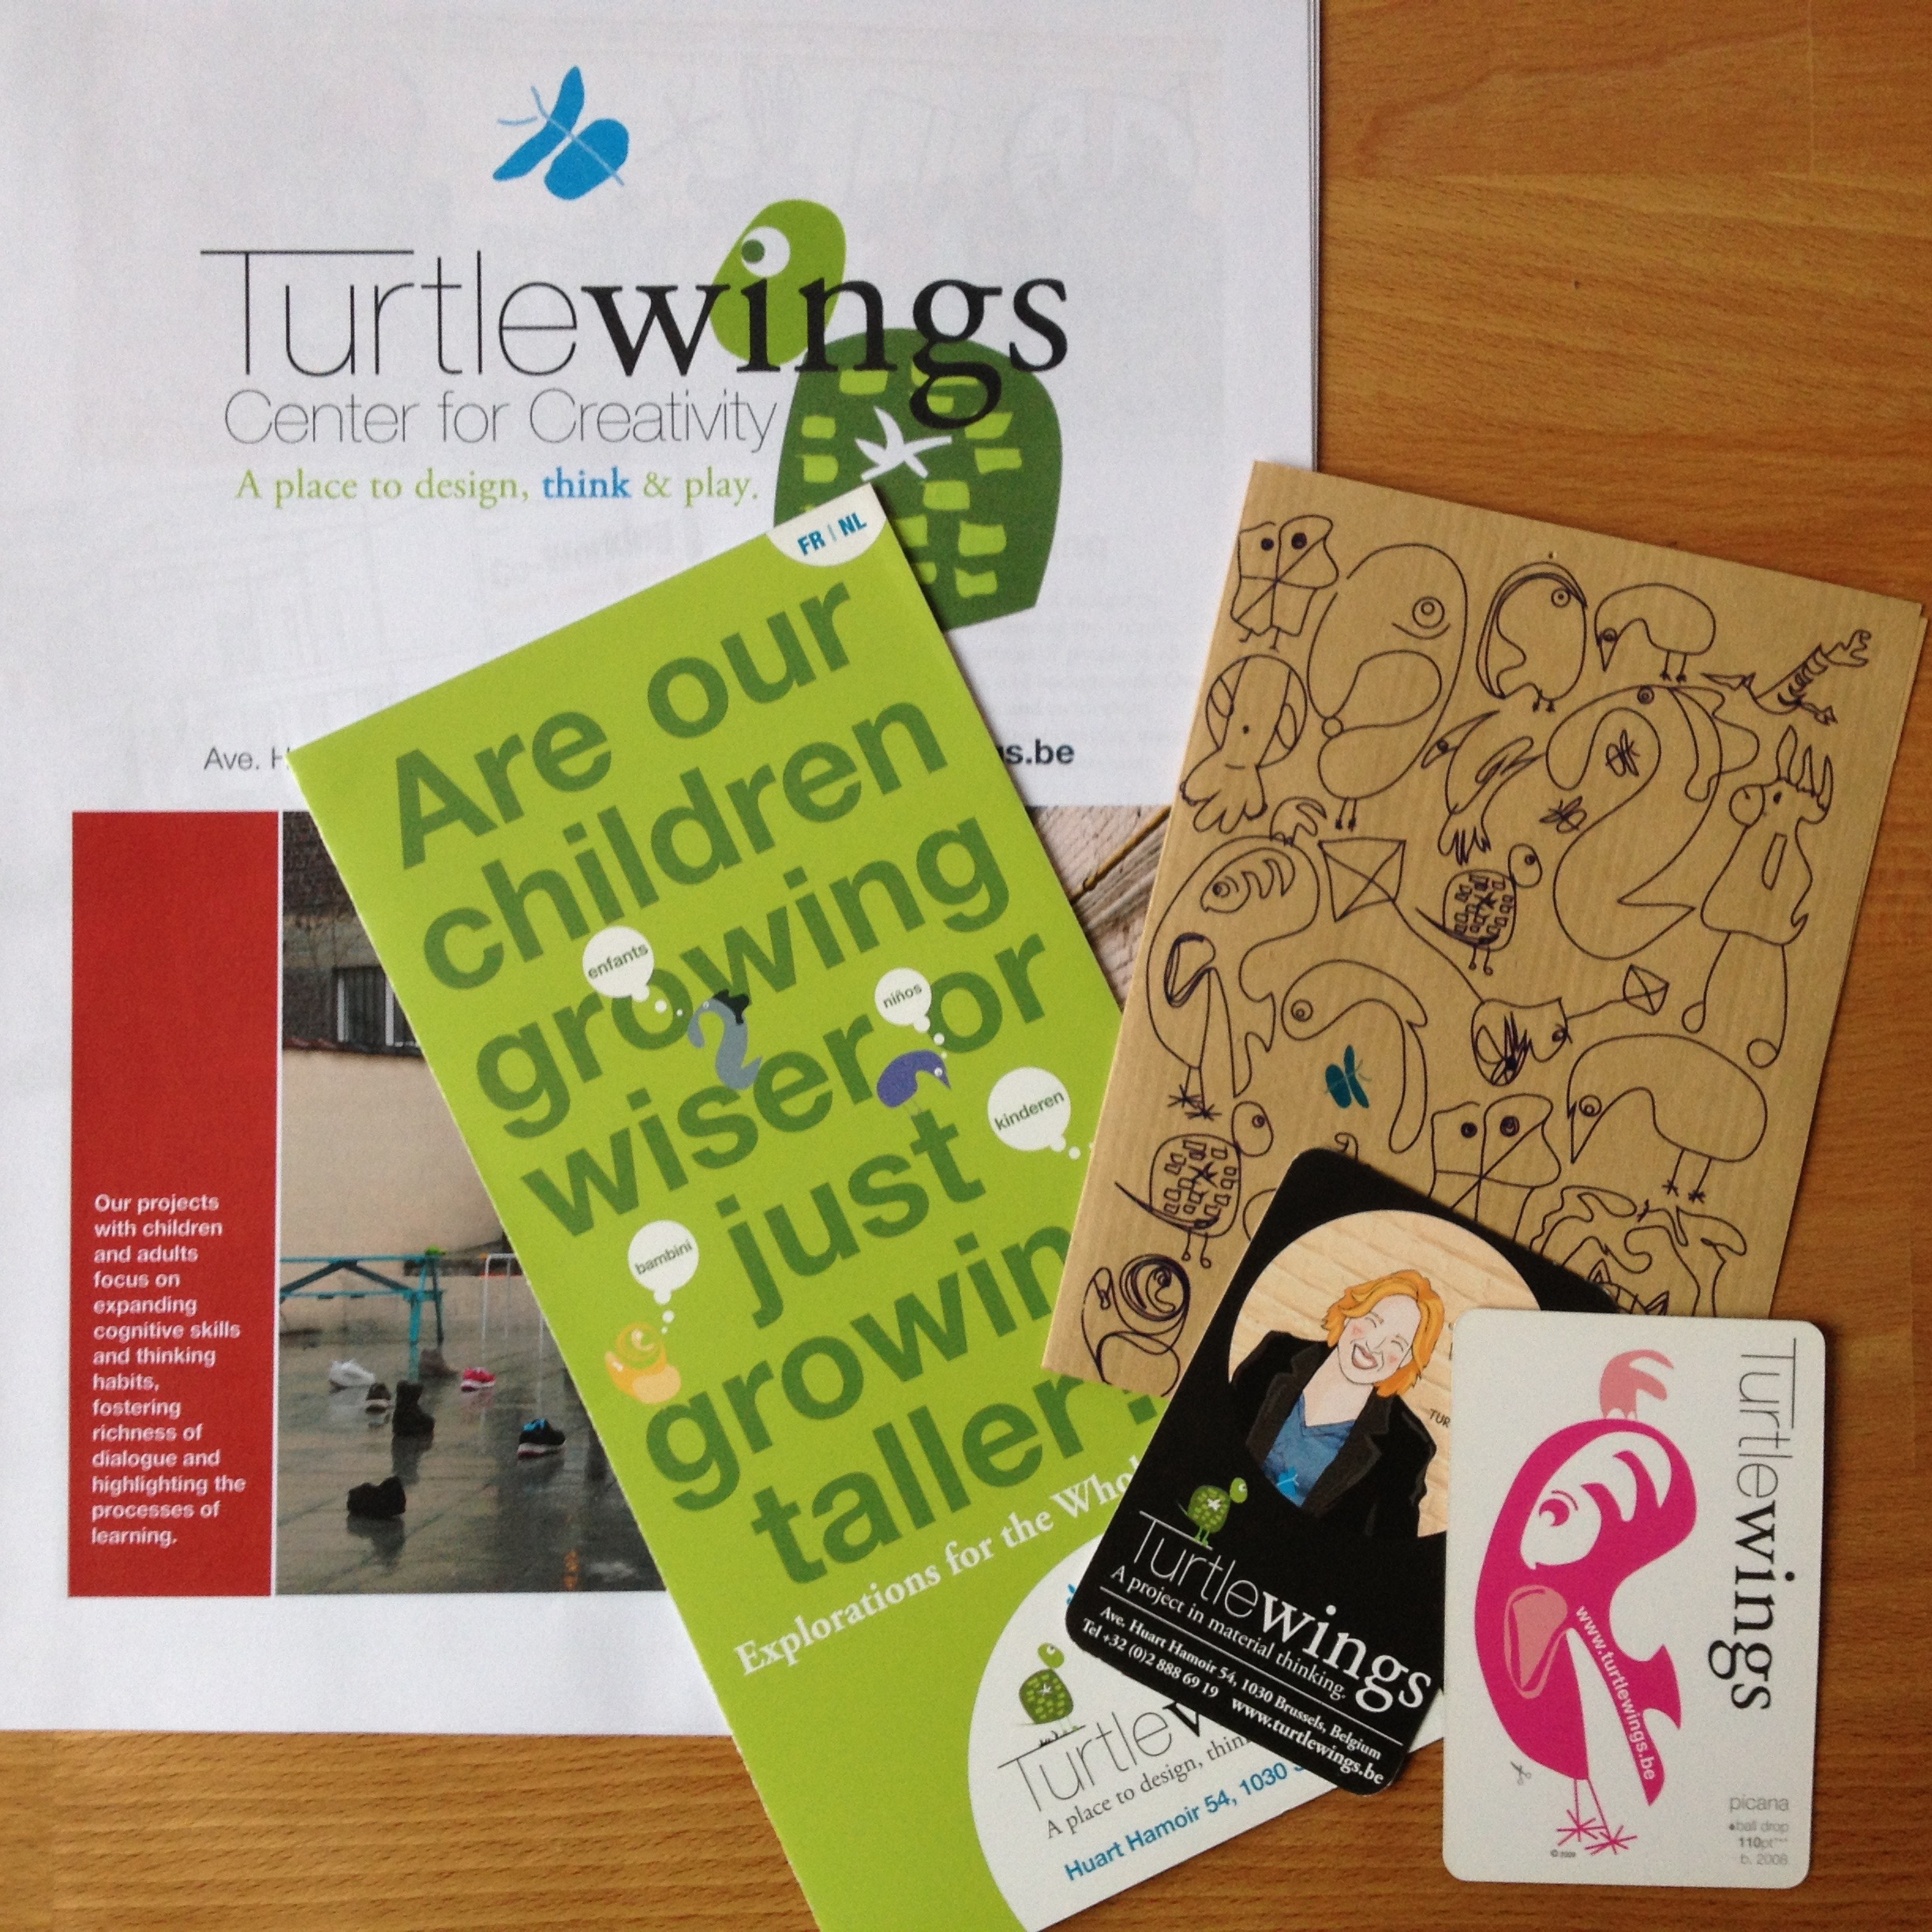 Turtlewings branding and marketing materials 2009-2014